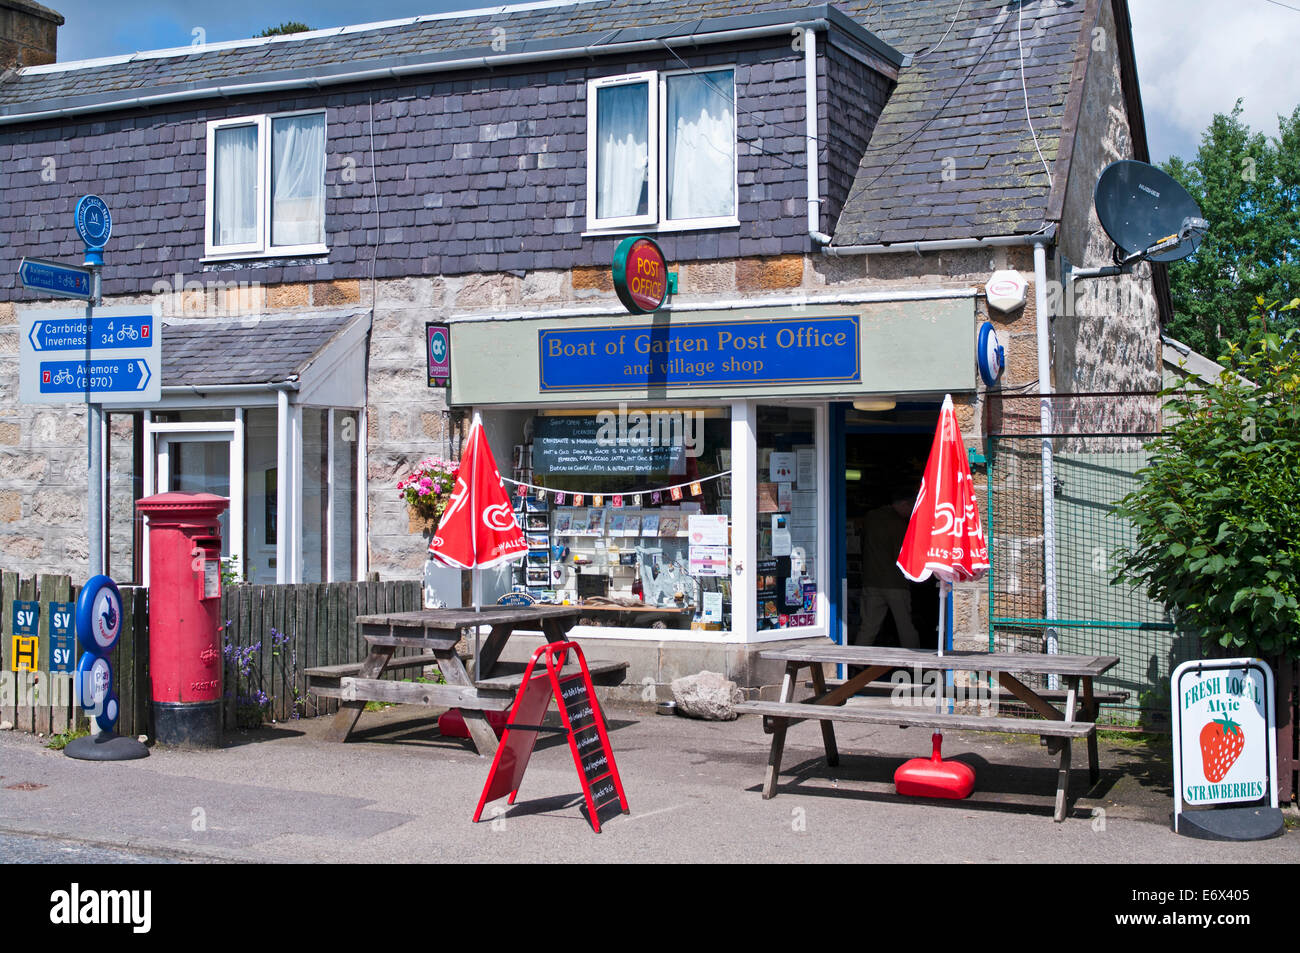 Garten shop  Boat of Garten Post Office and village shop, Boat of Garten, near ...